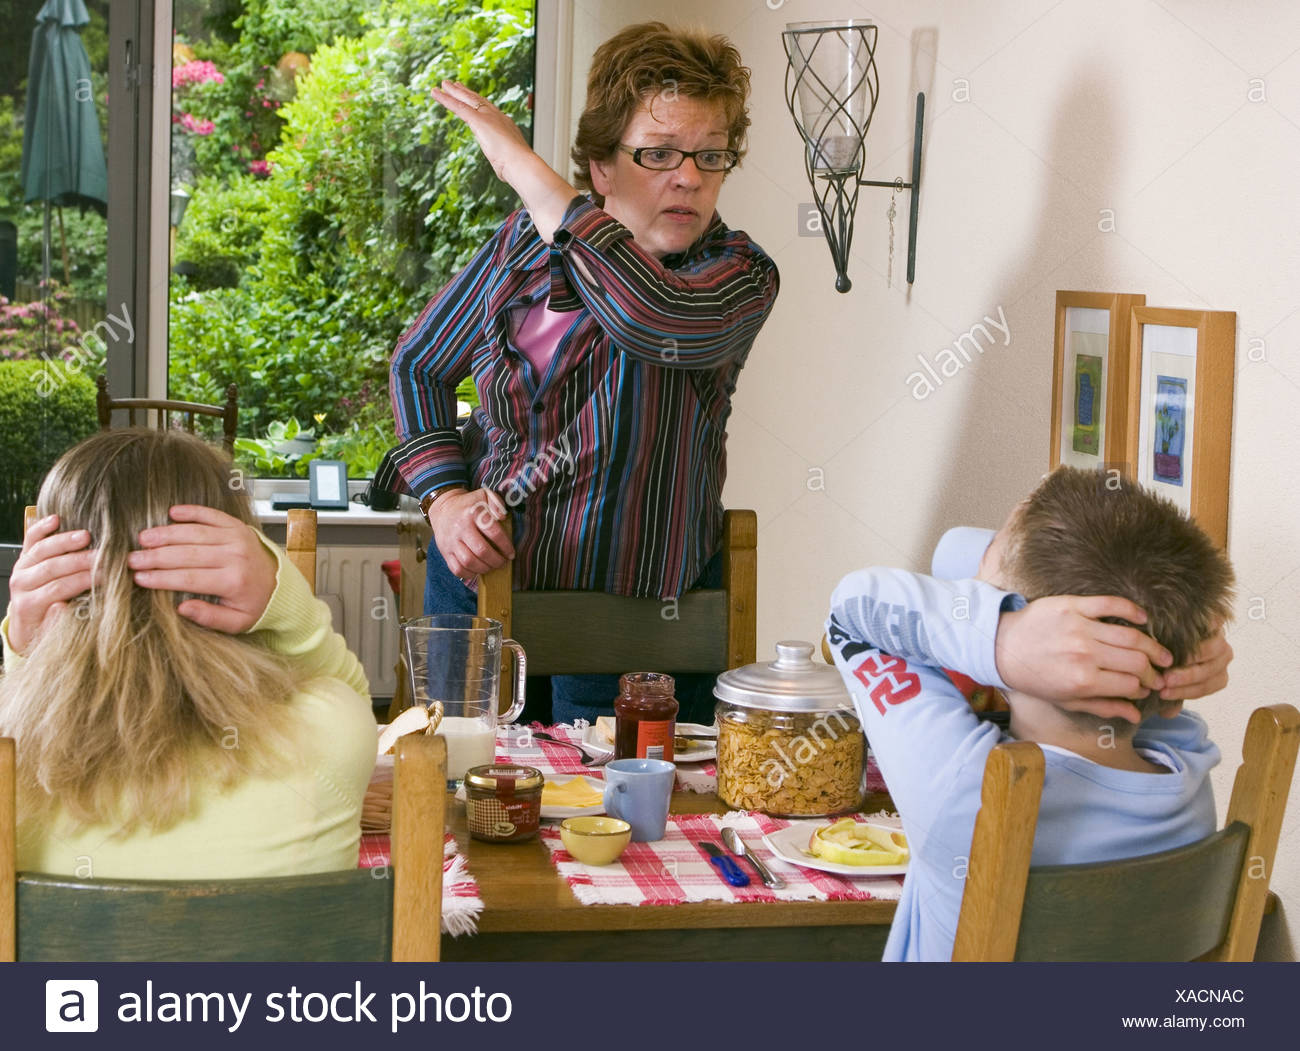 Child abuse at home: Mother smacking her childrenat breakfast table at home and looking very angry. SerieCVS417009 (keyword) - Stock Image